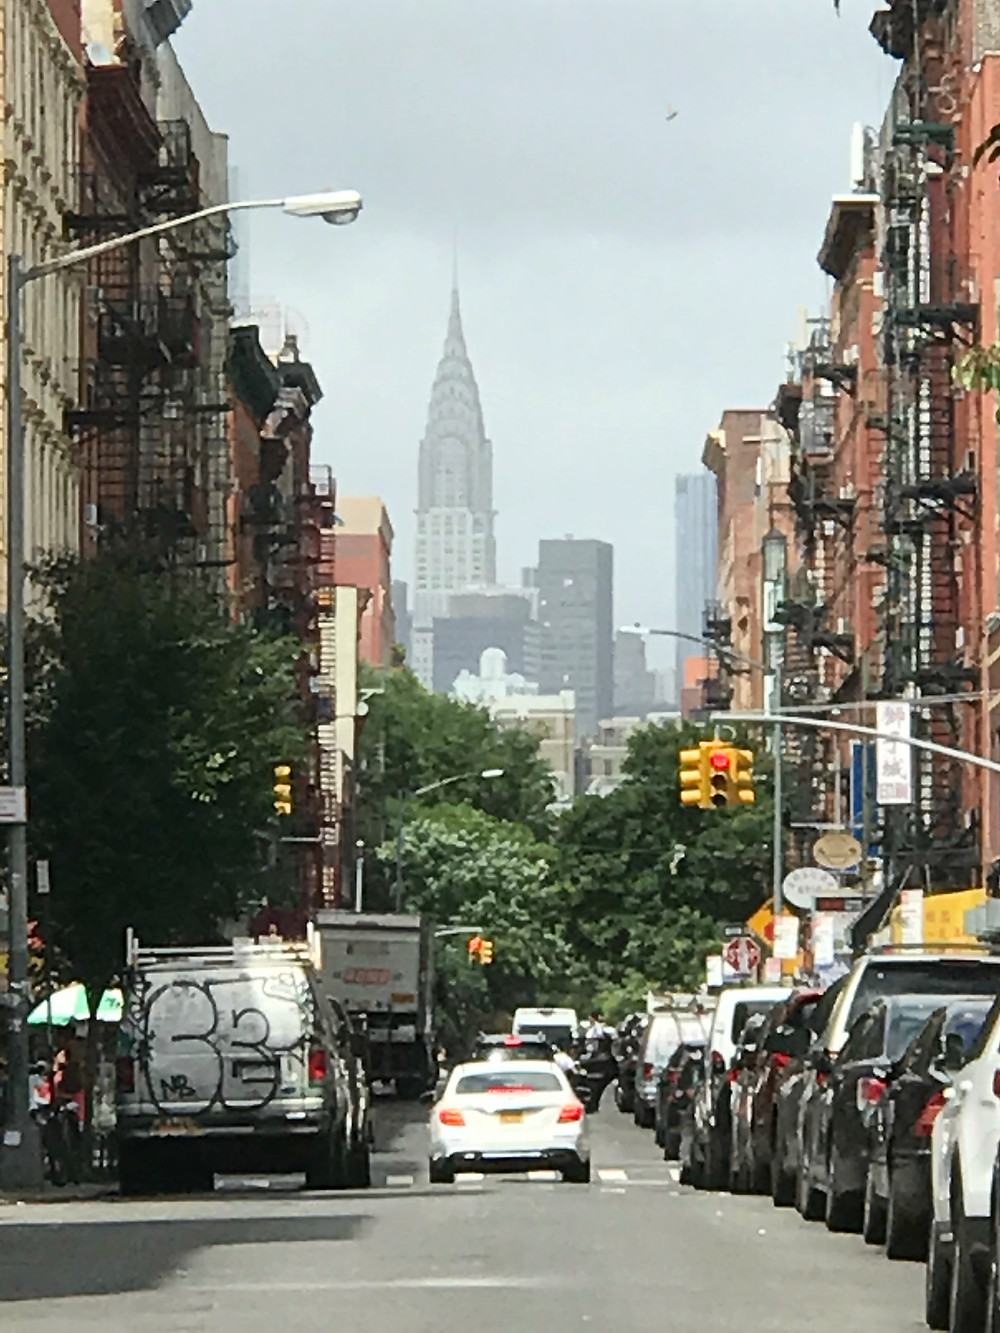 View of the Chrystler Building from the Lower East Side, New York, New York